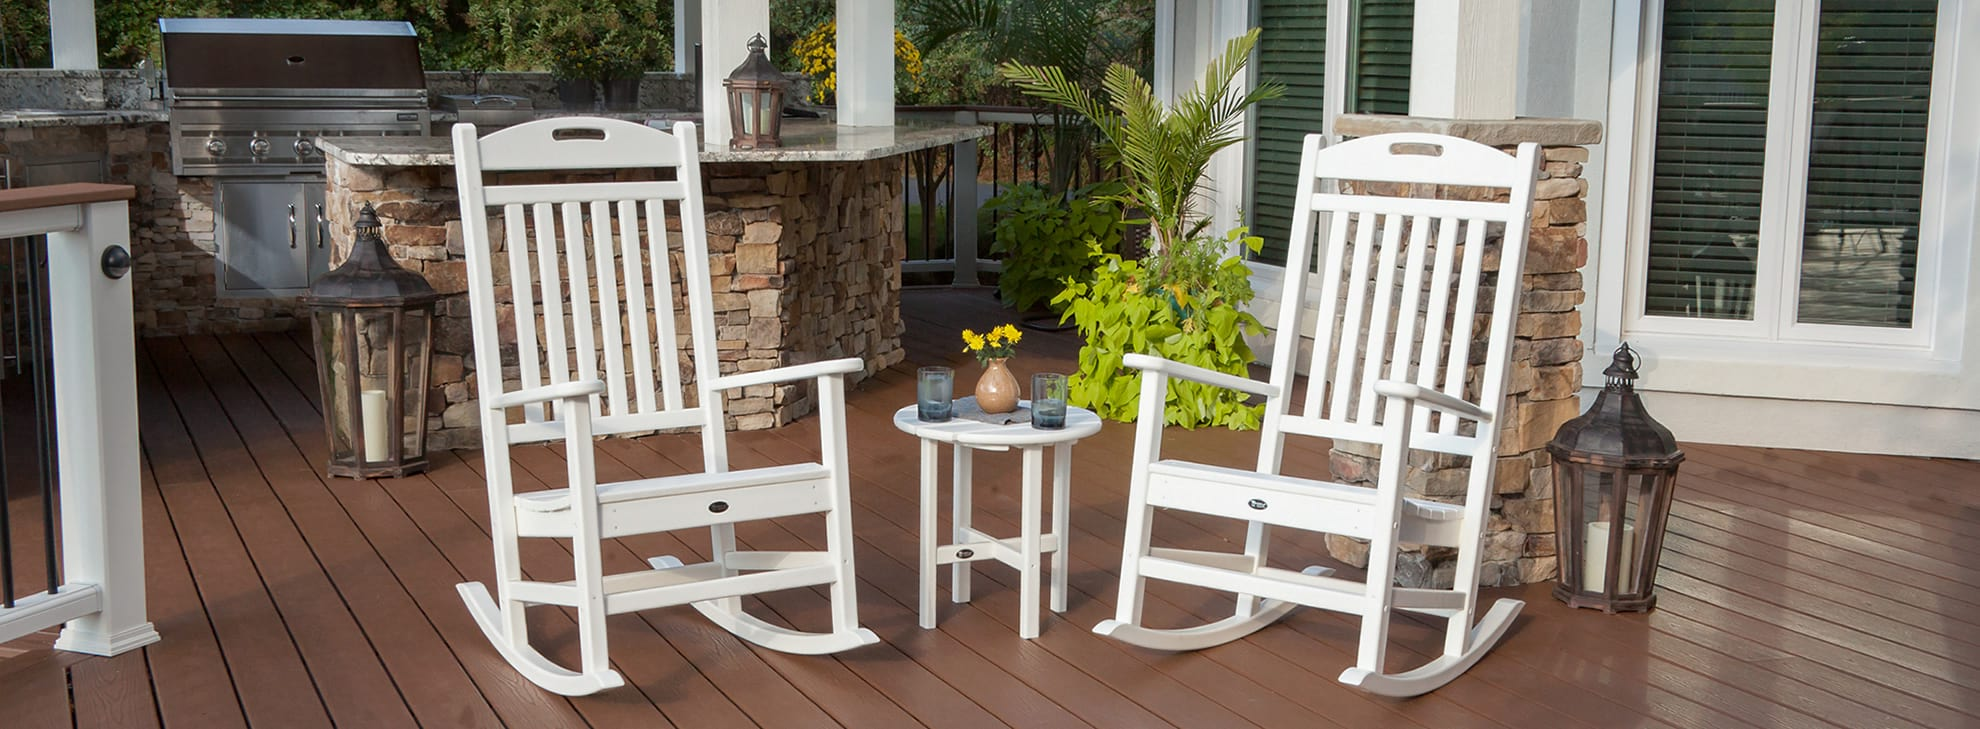 White Rocking Chairs on a Trex deck